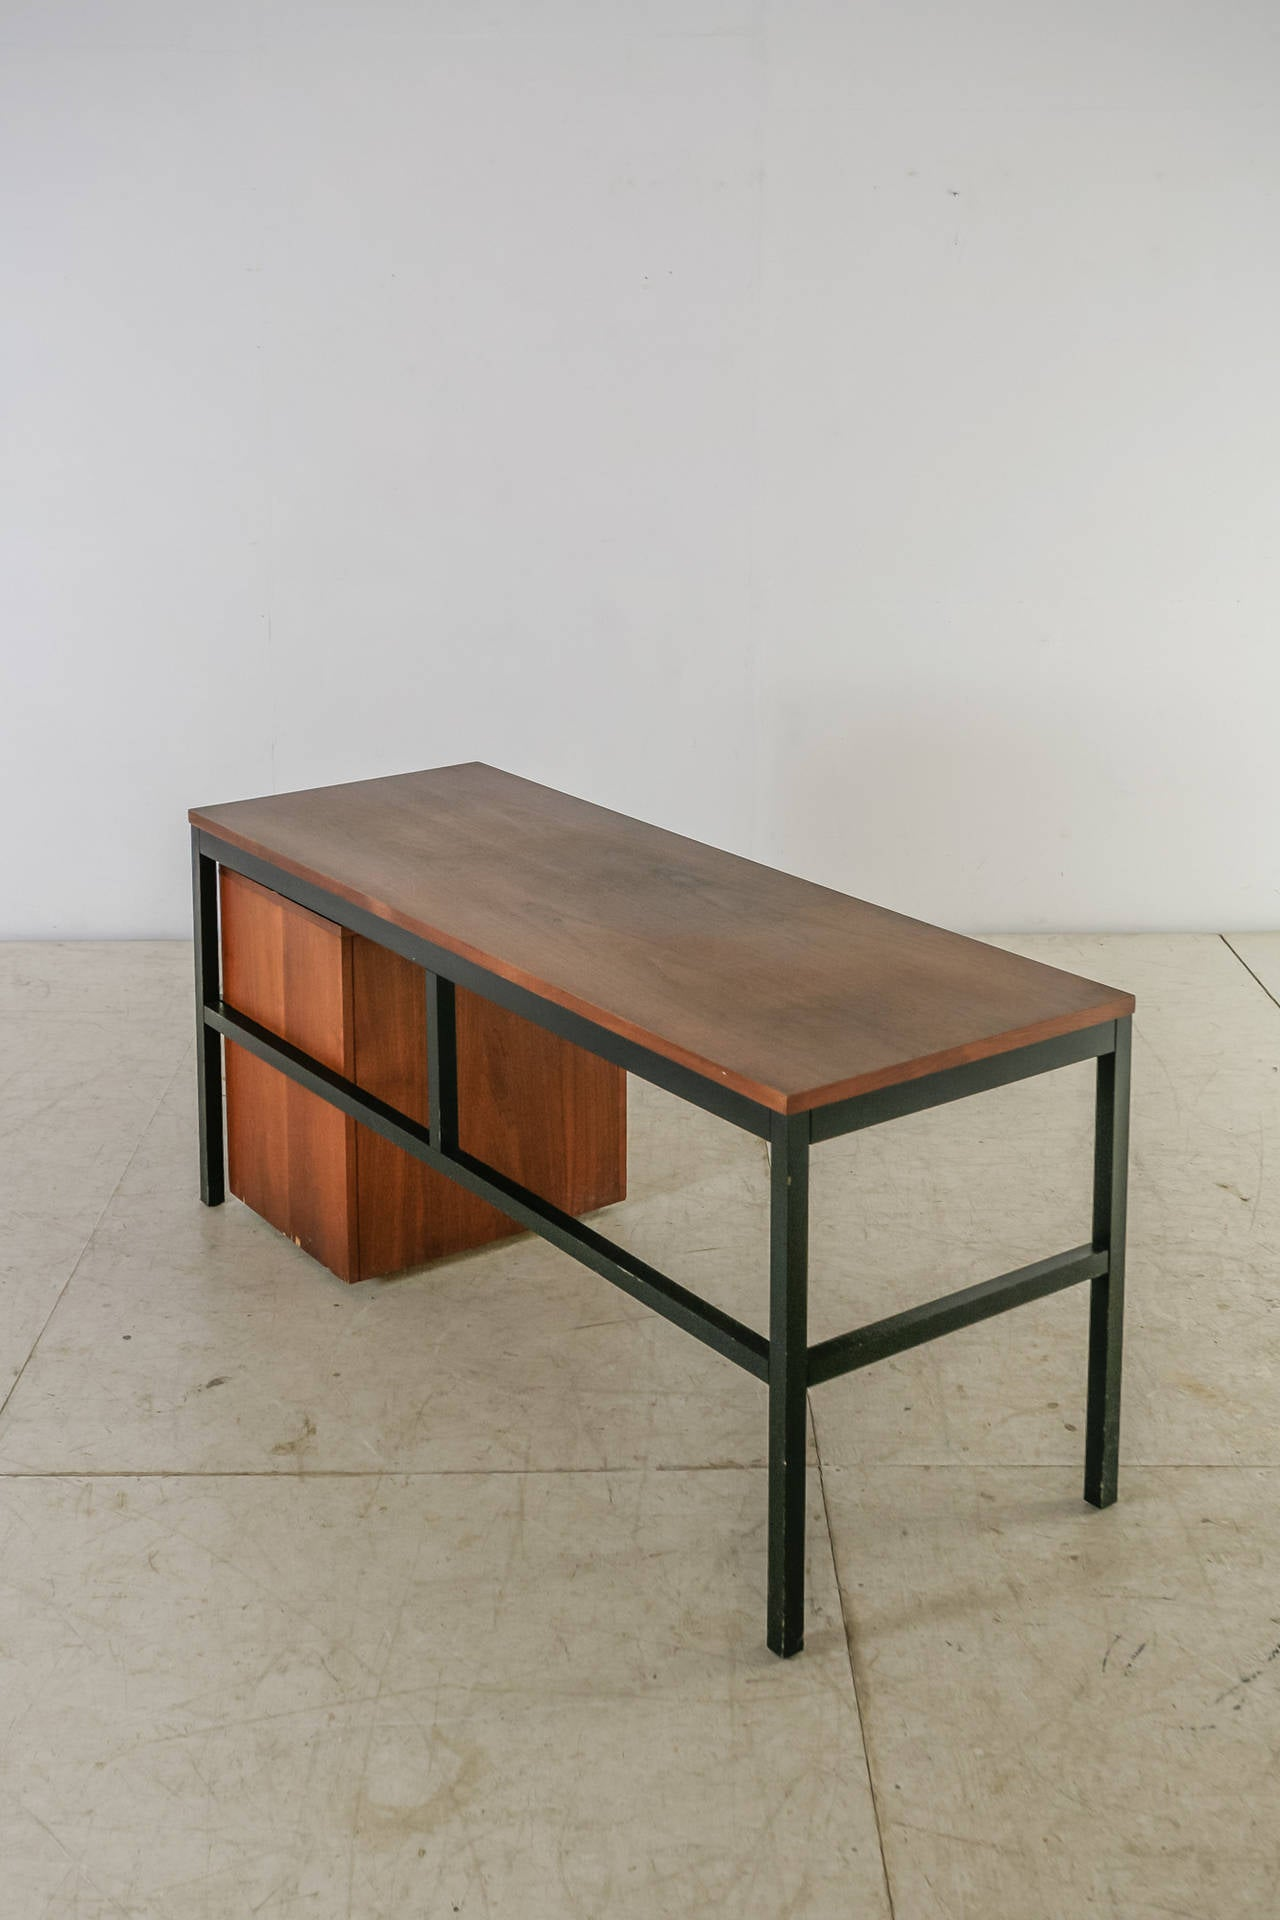 American Milo Baughman for Directional Desk Annex Console Table, USA, 1960s For Sale